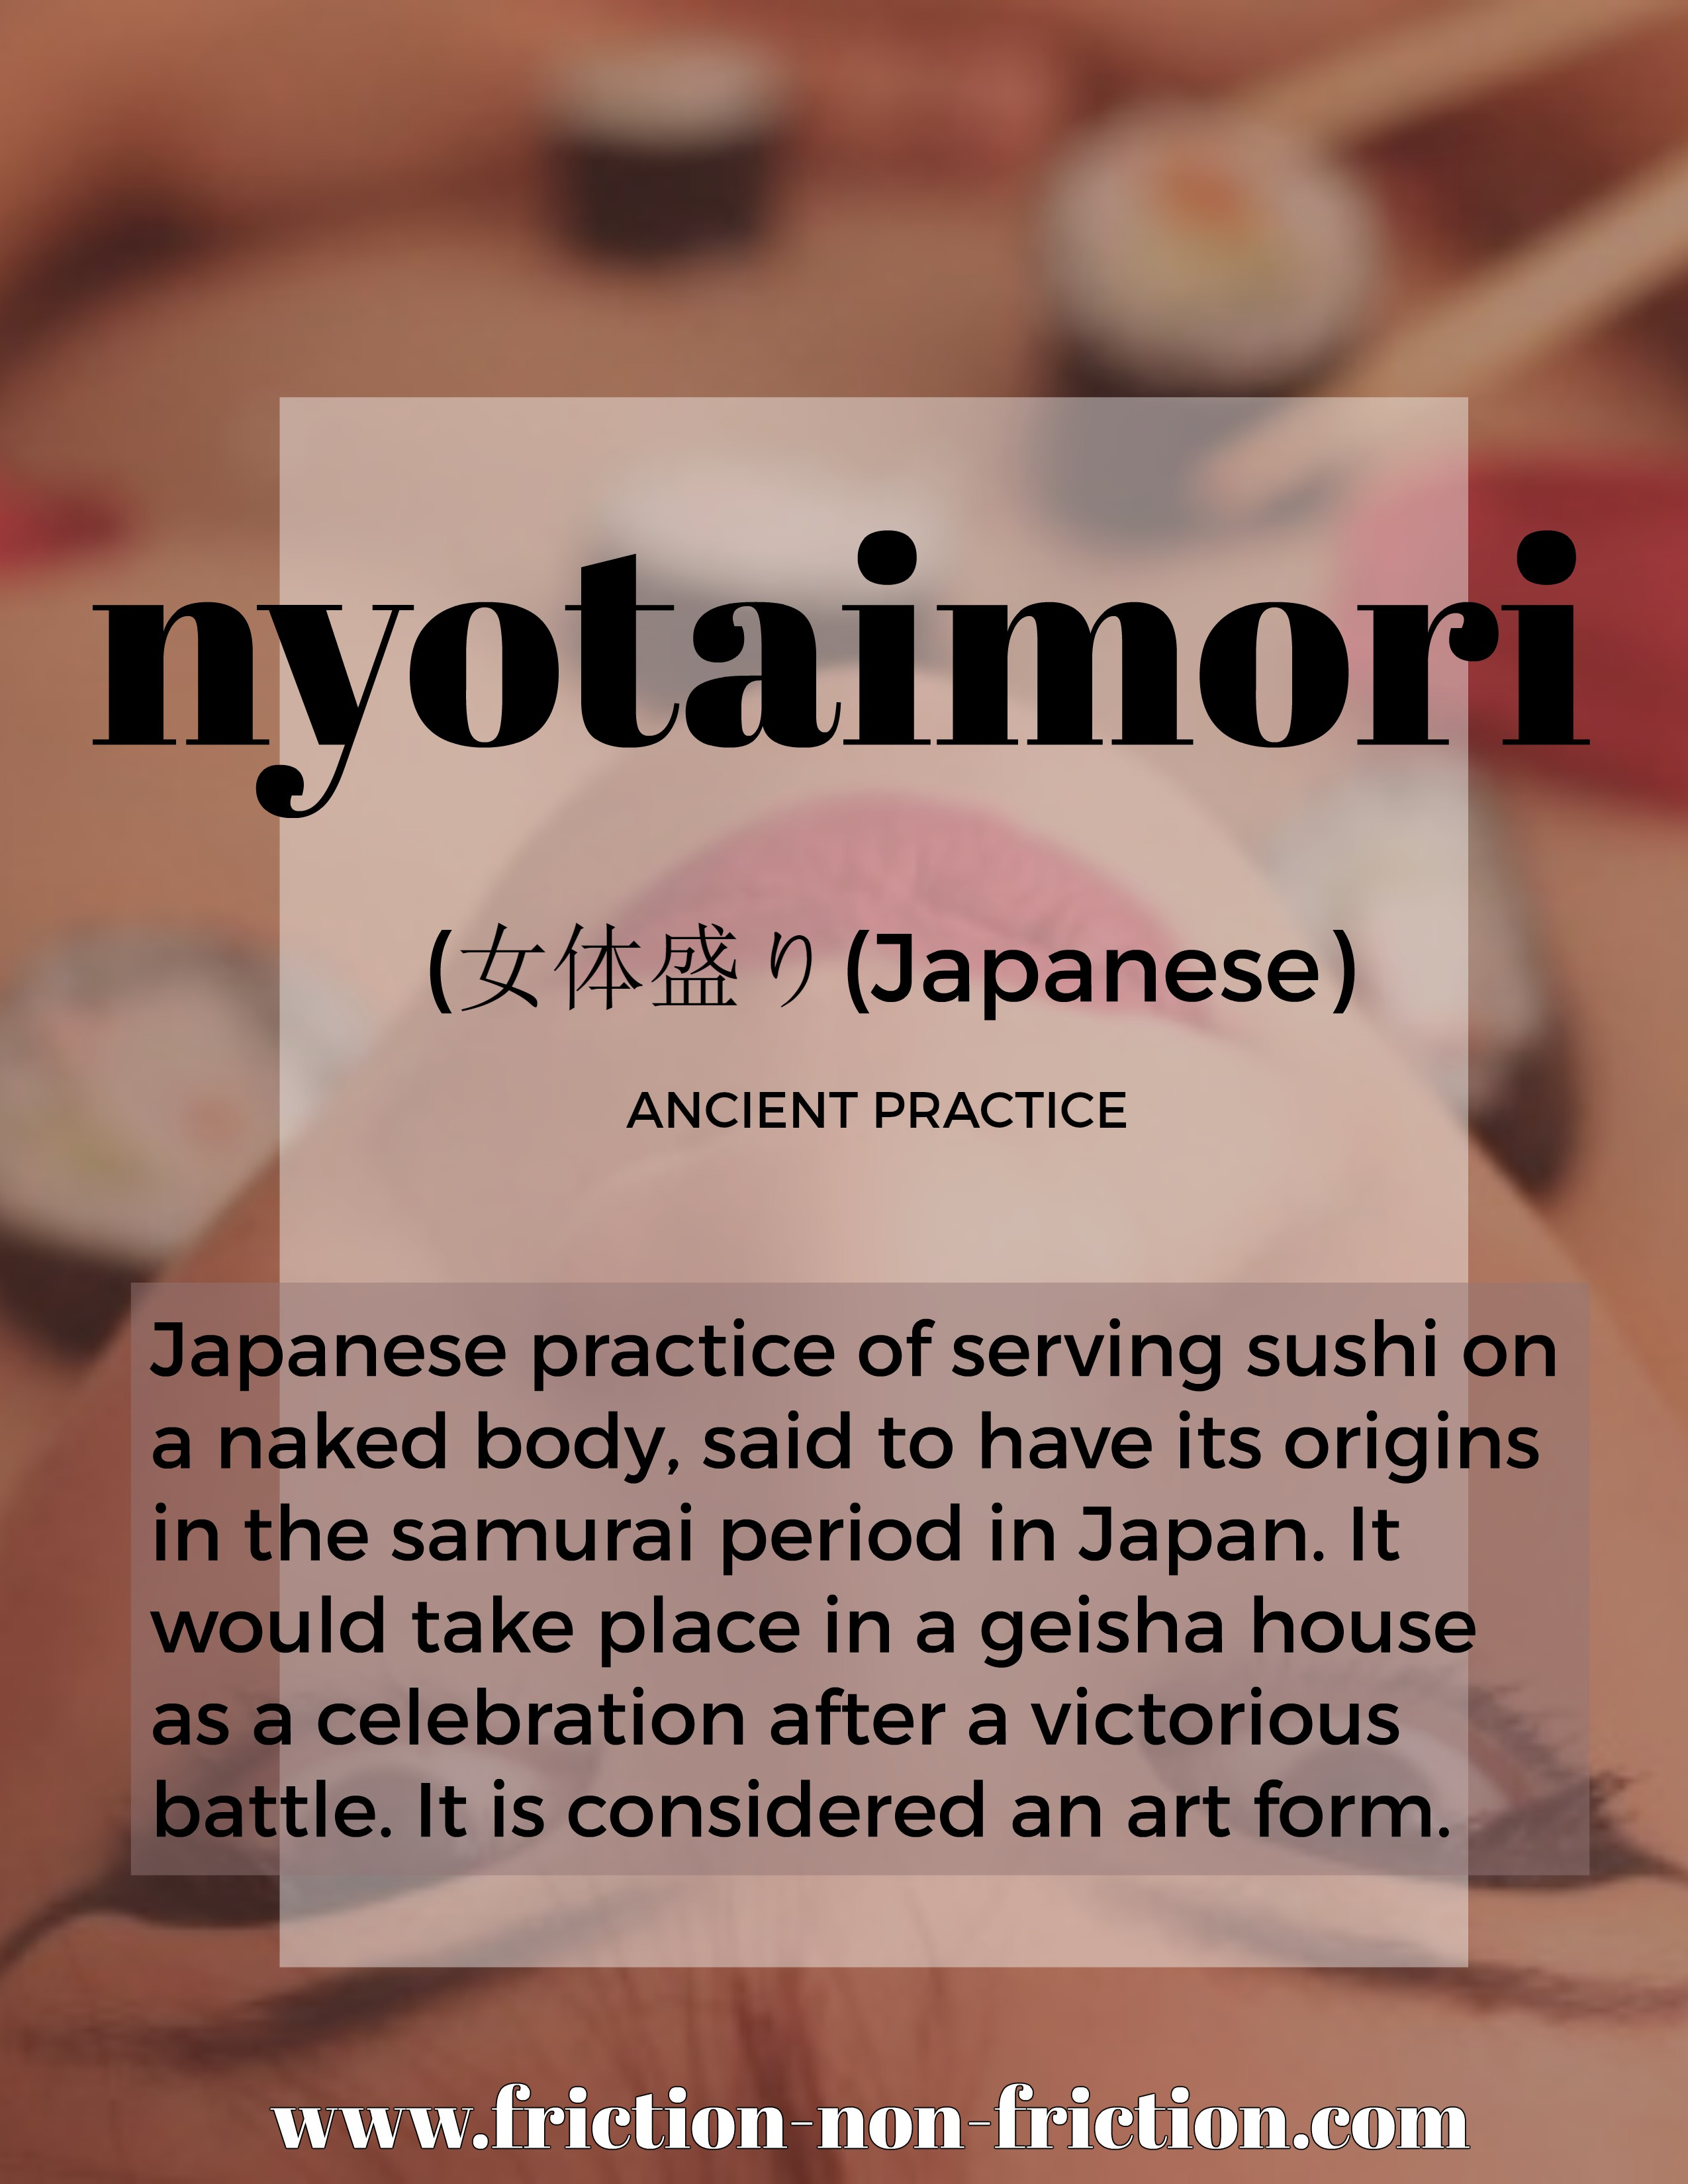 Nyotaimori  -- another great FRICTIONARY definition from Friction|non|Friction